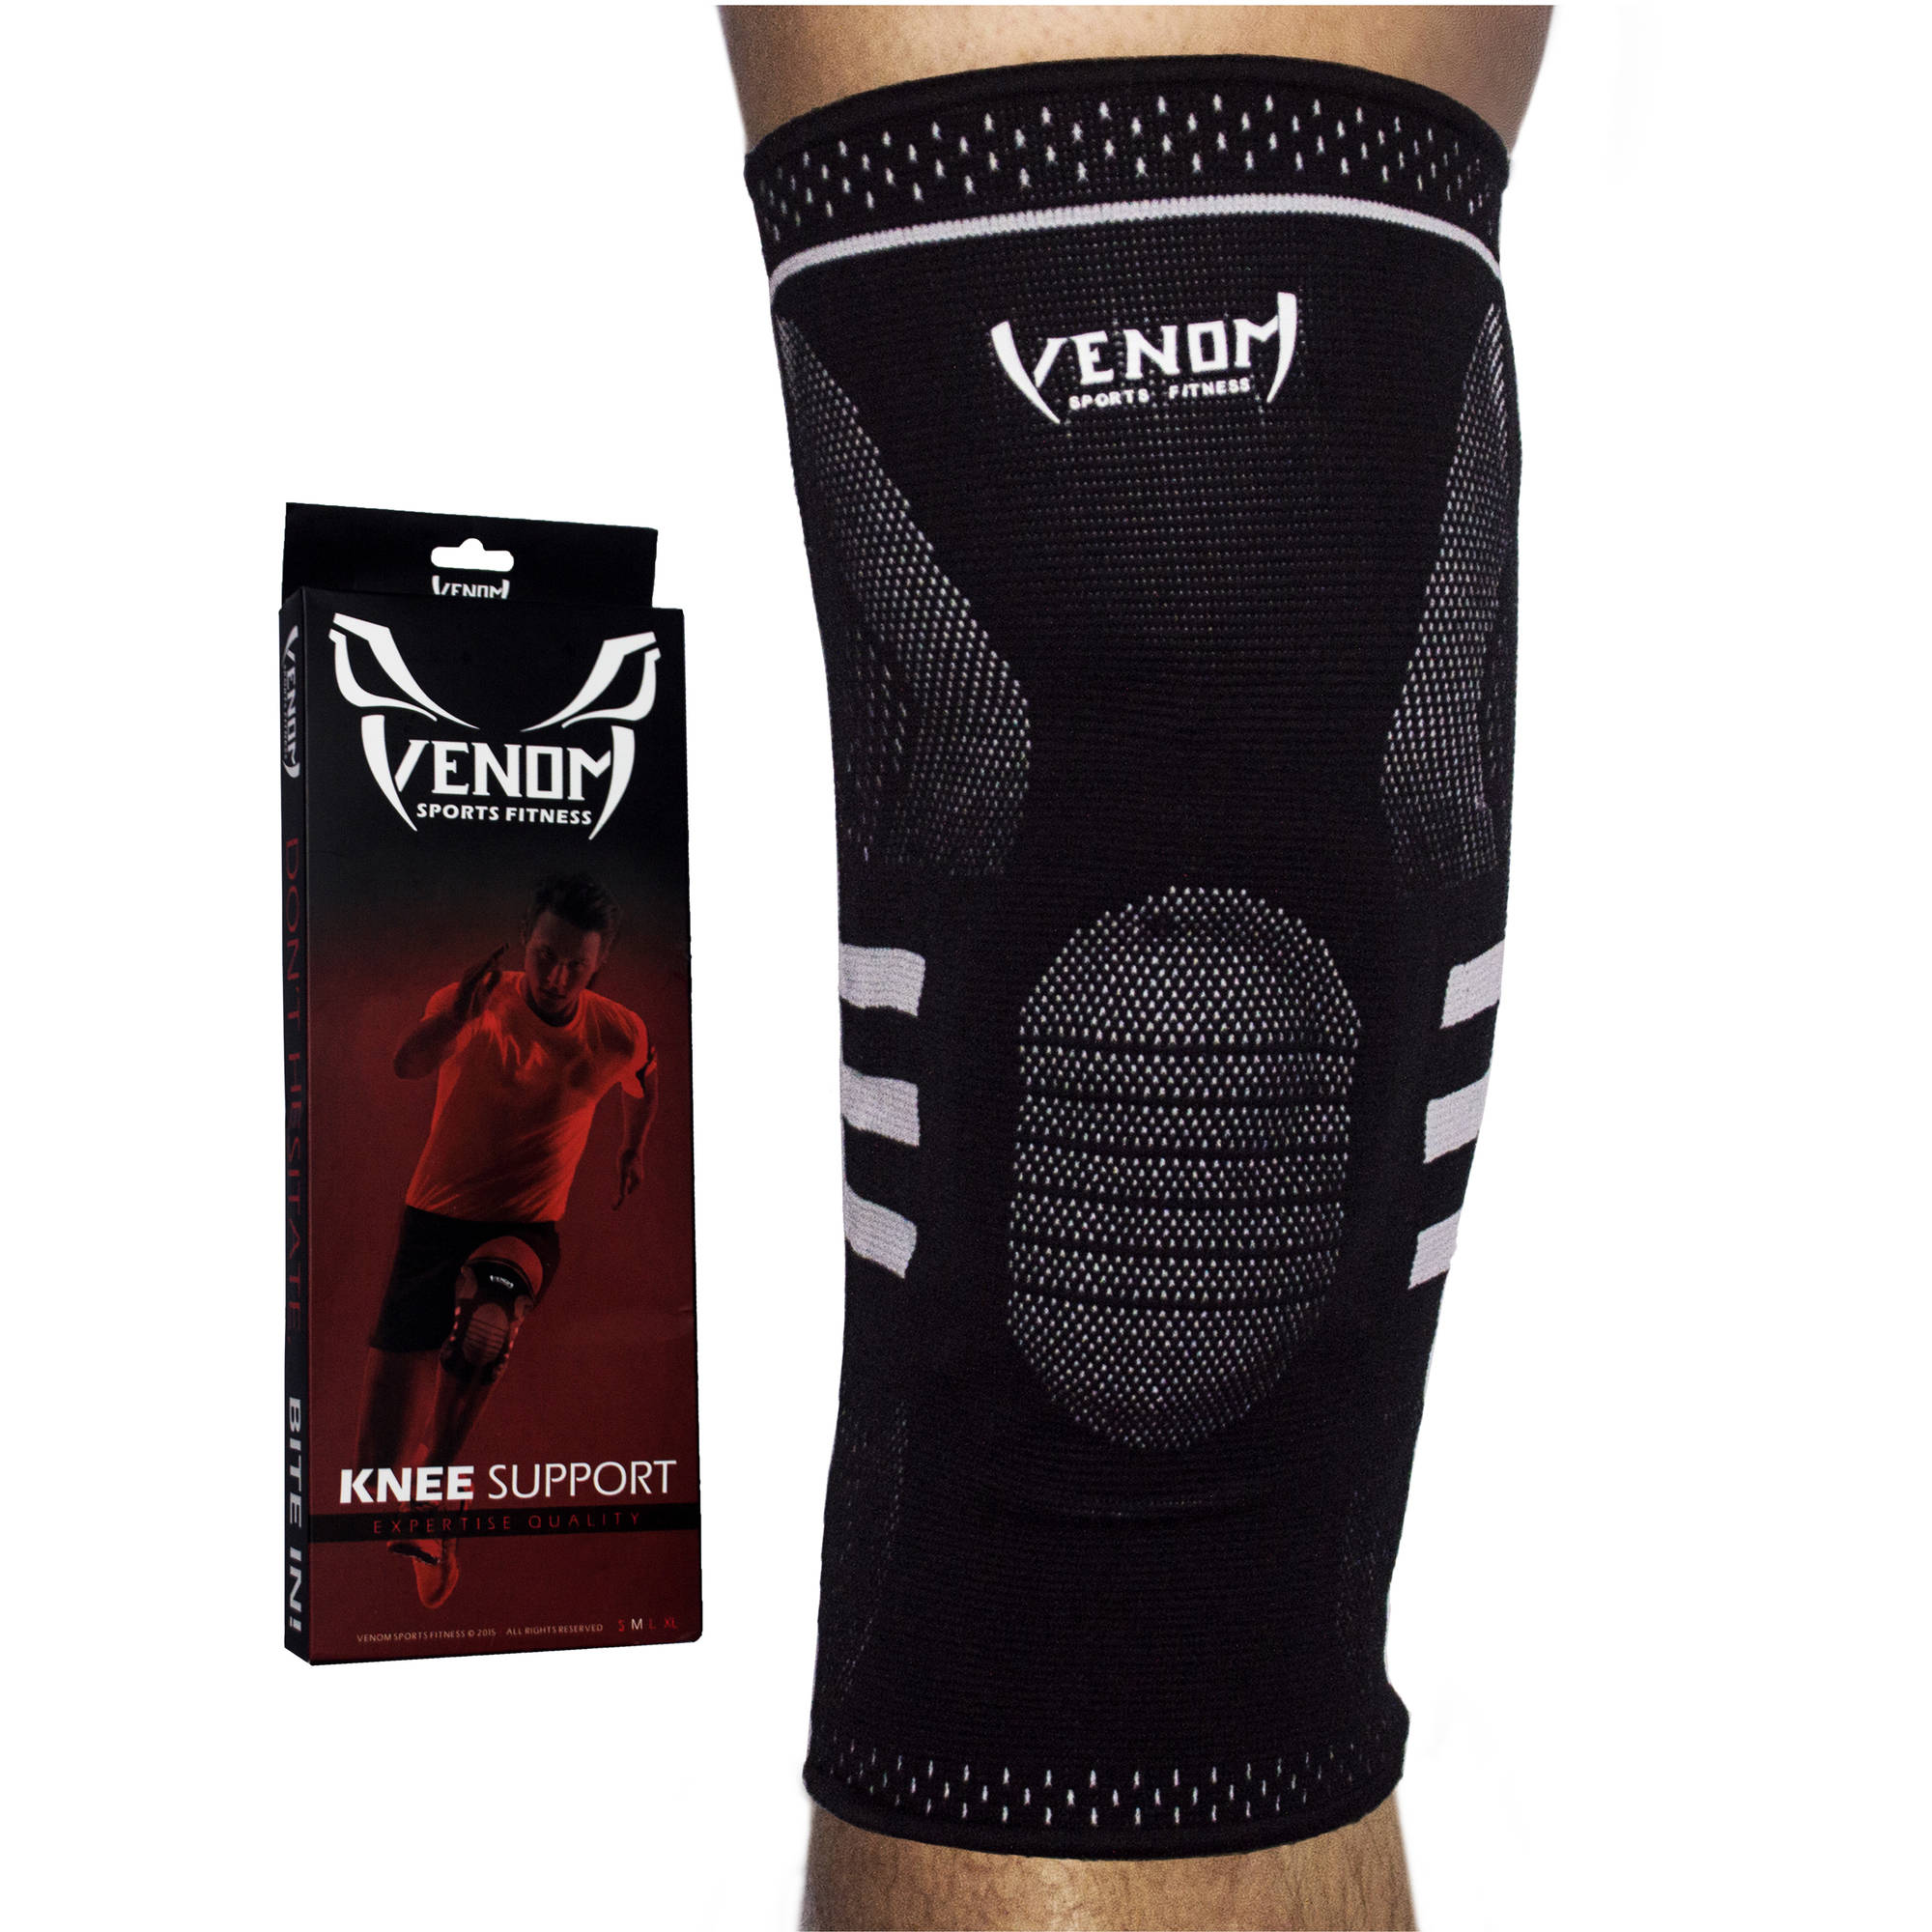 Venom Sports Fitness Knee Sleeve Gel Padded Support with Closed Patella